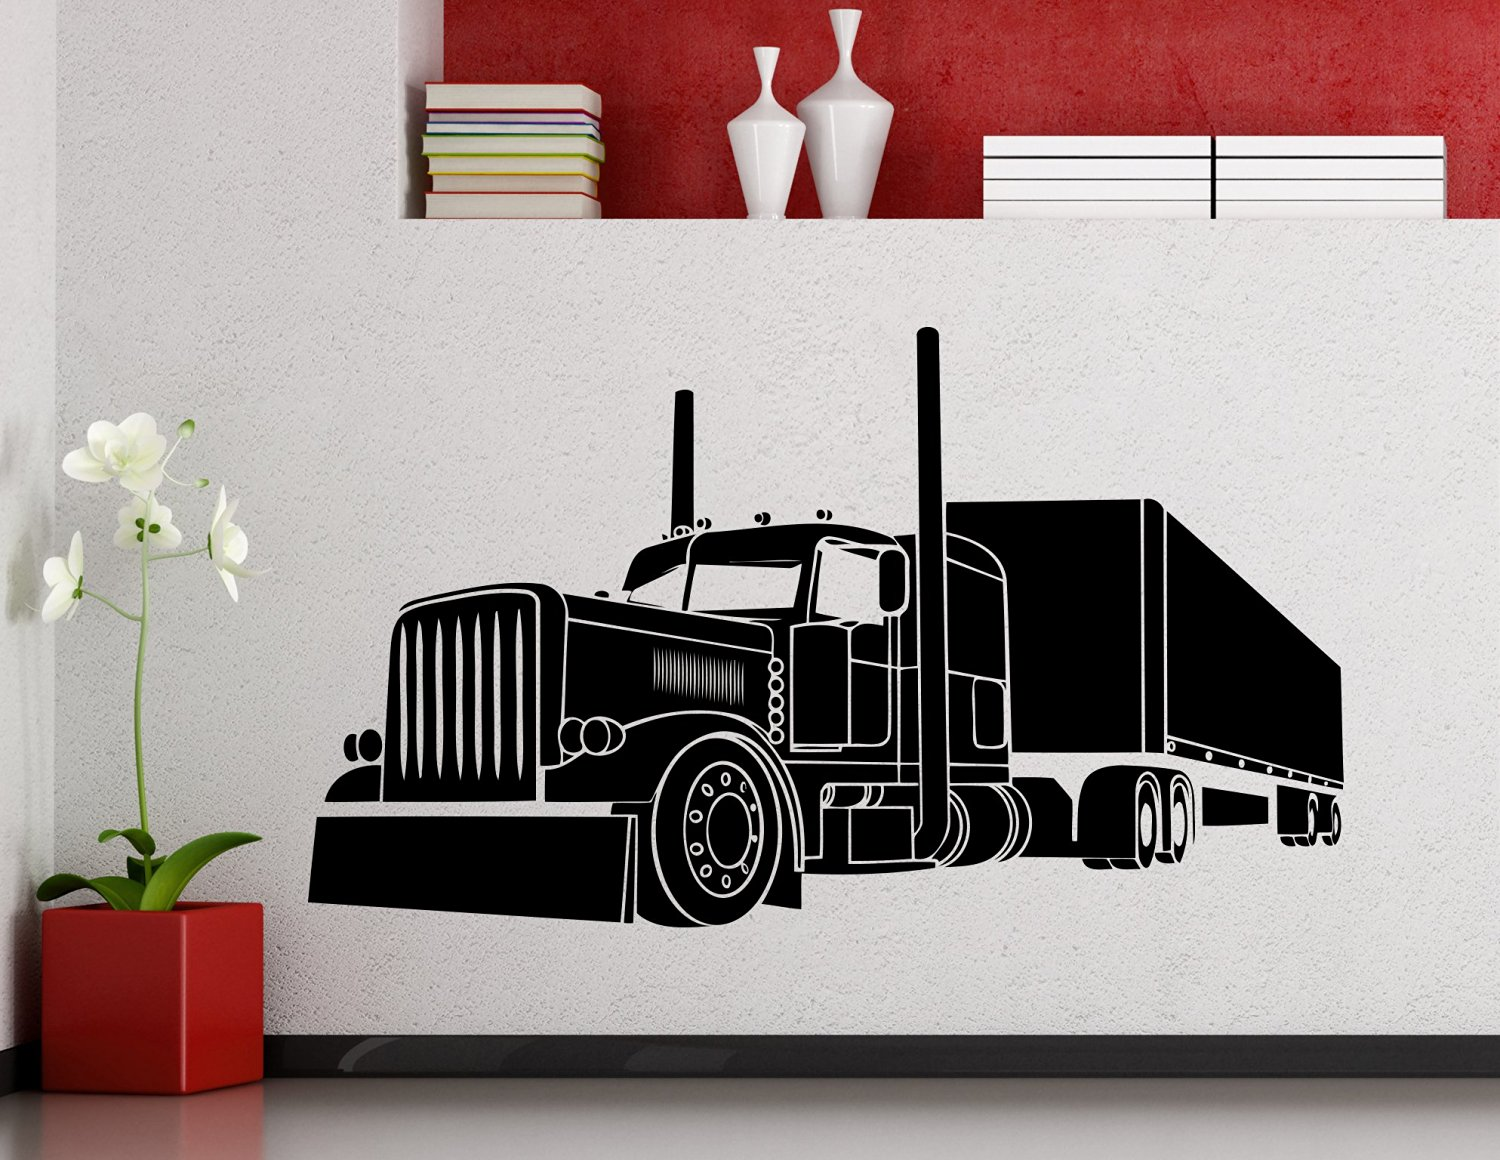 Big Truck Wall Decal Semi Truck Automobile Monster Car Vehicle Vinyl Sticker Home Nursery Kids Boy Girl Room Interior Art Decoration Any Room Mural Waterproof High Quality Vinyl Sticker (188xx)